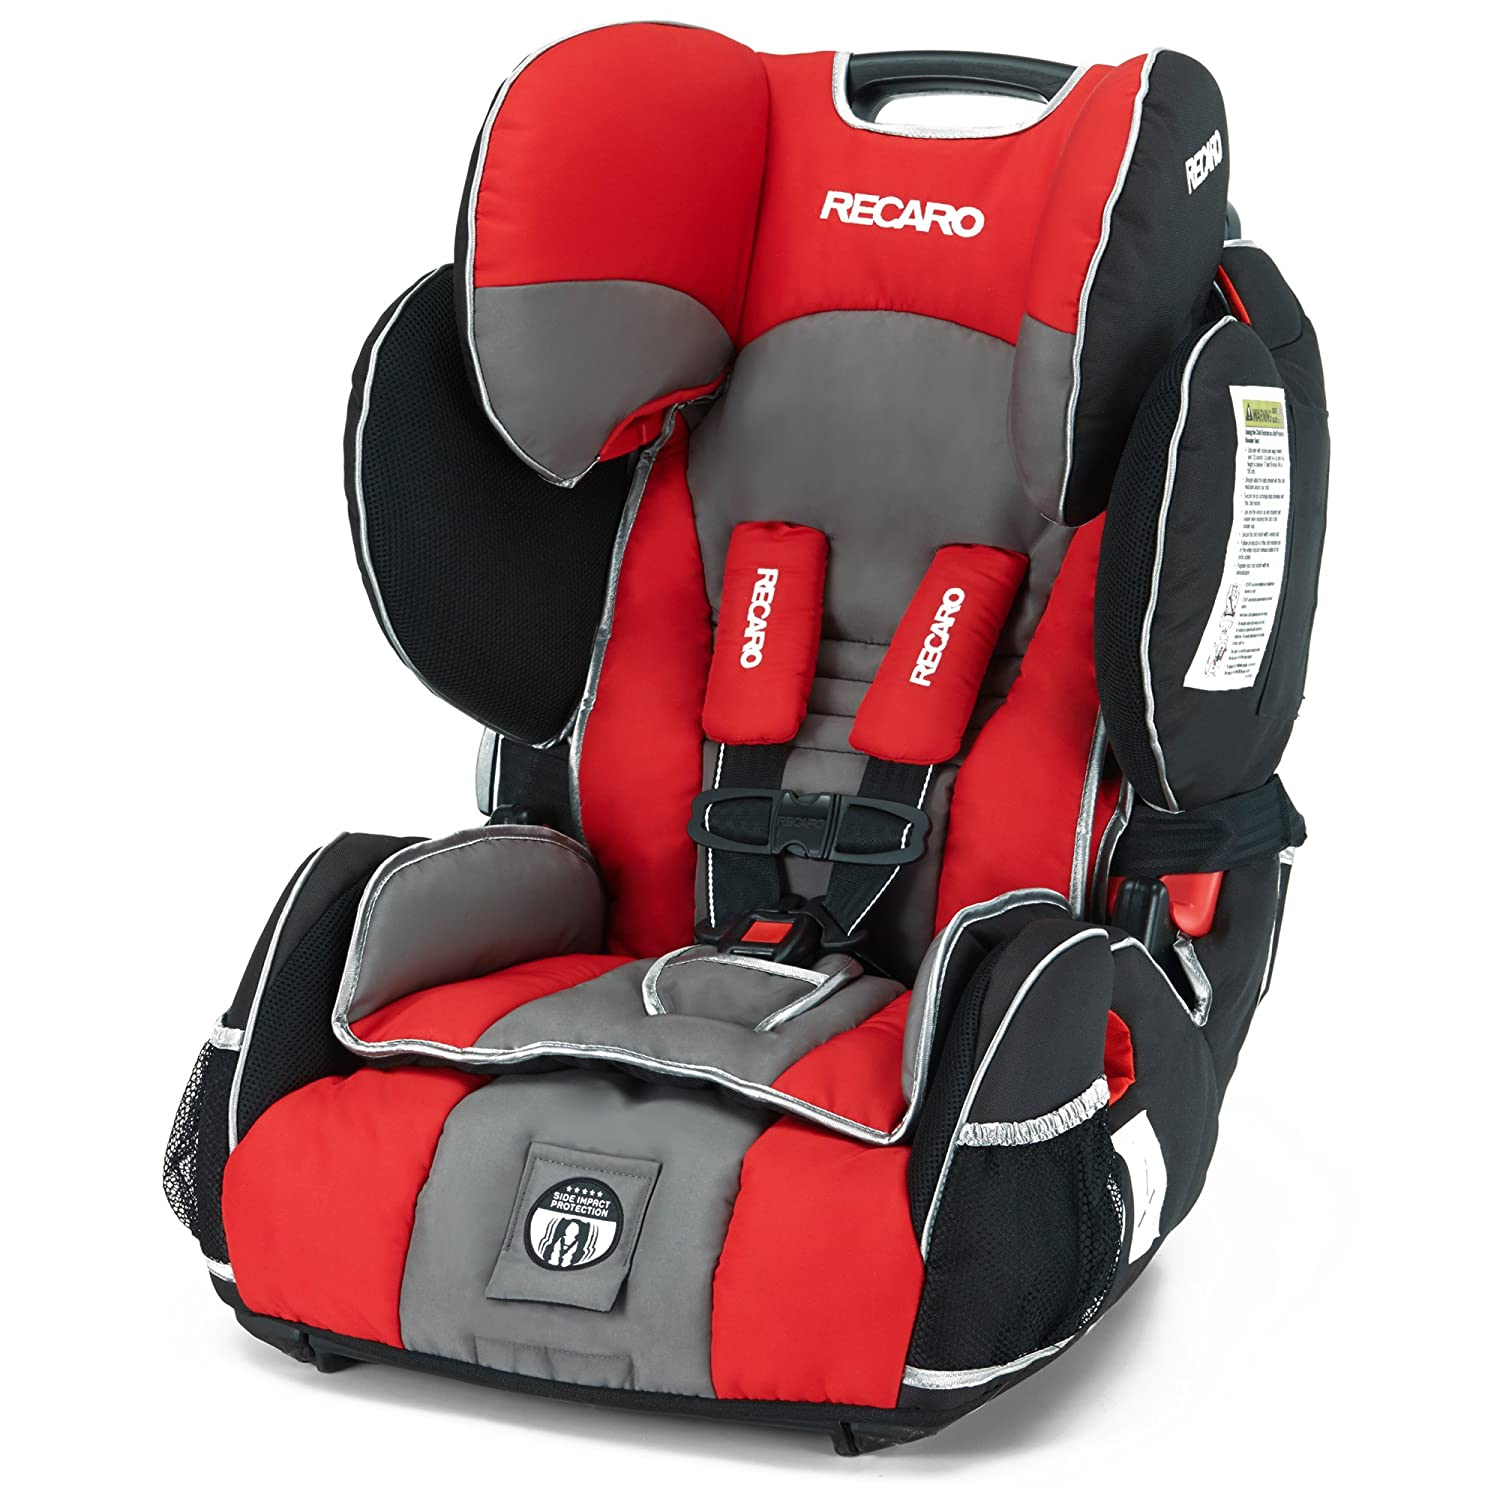 Recaro Performance Sport >> Recaro Performance Sport Harness To Booster Seat Chili